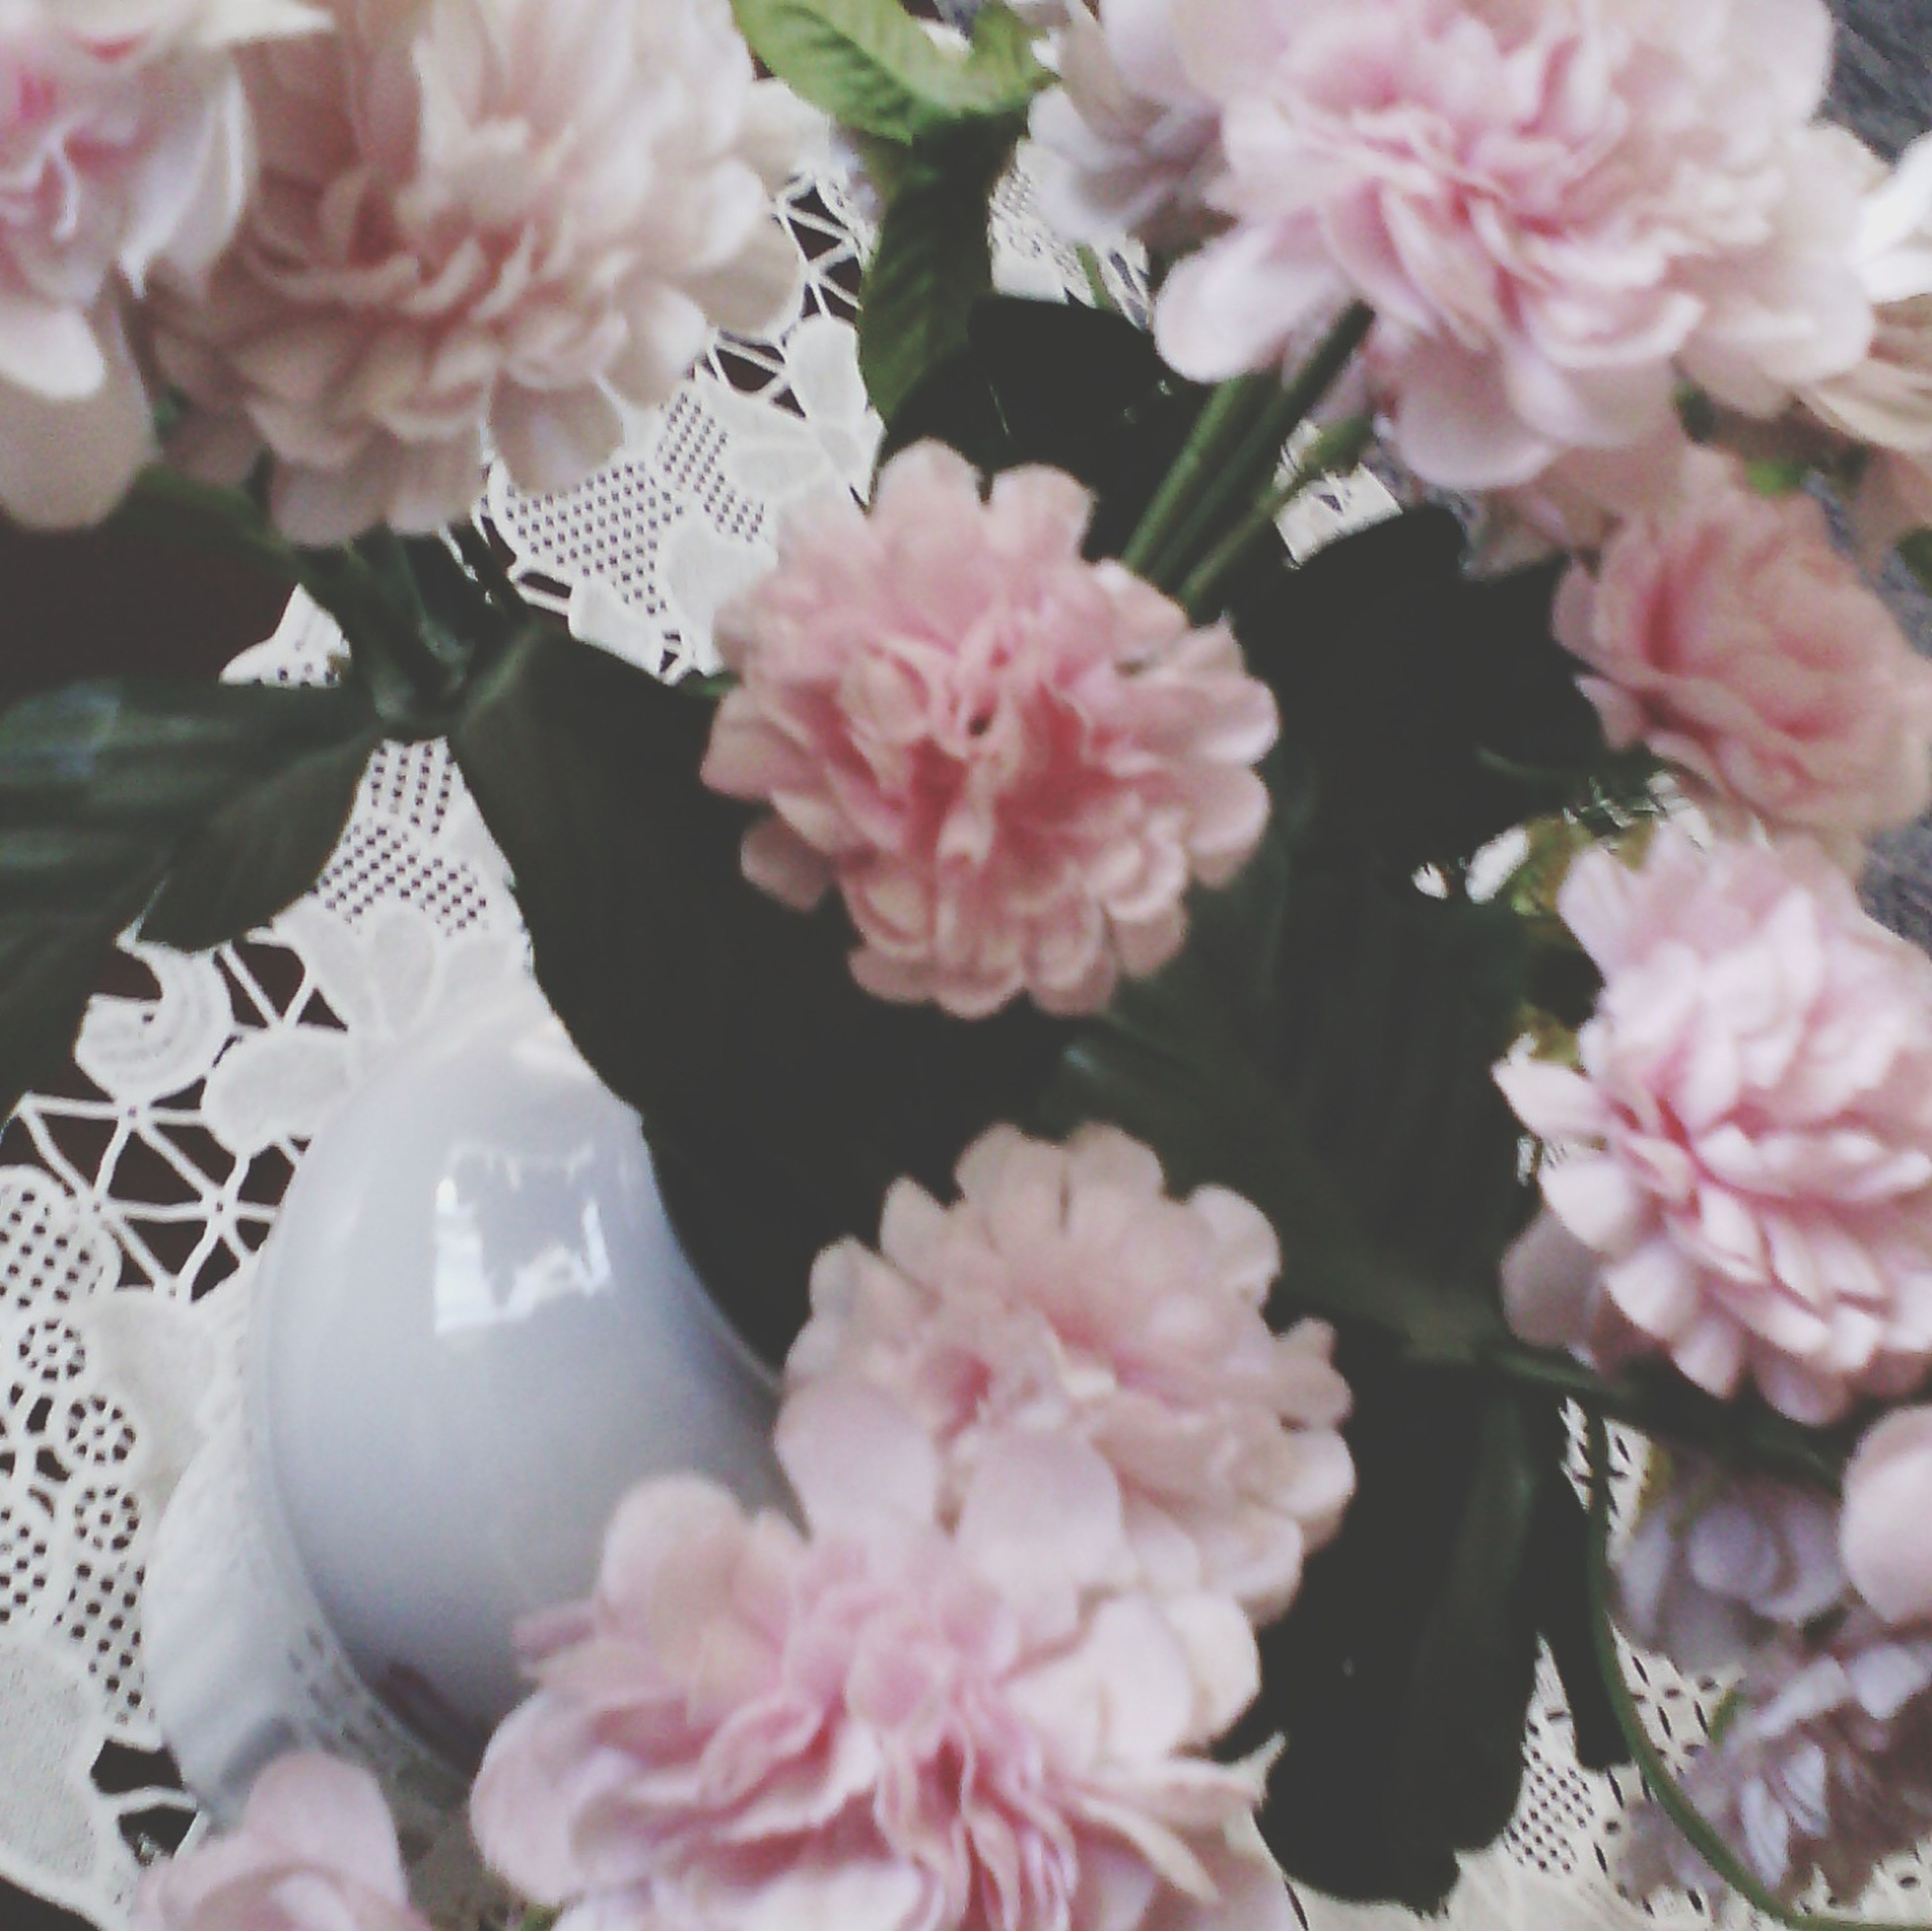 flower, freshness, petal, fragility, pink color, flower head, beauty in nature, blooming, close-up, growth, nature, bouquet, focus on foreground, in bloom, bunch of flowers, blossom, rose - flower, white color, park - man made space, pink